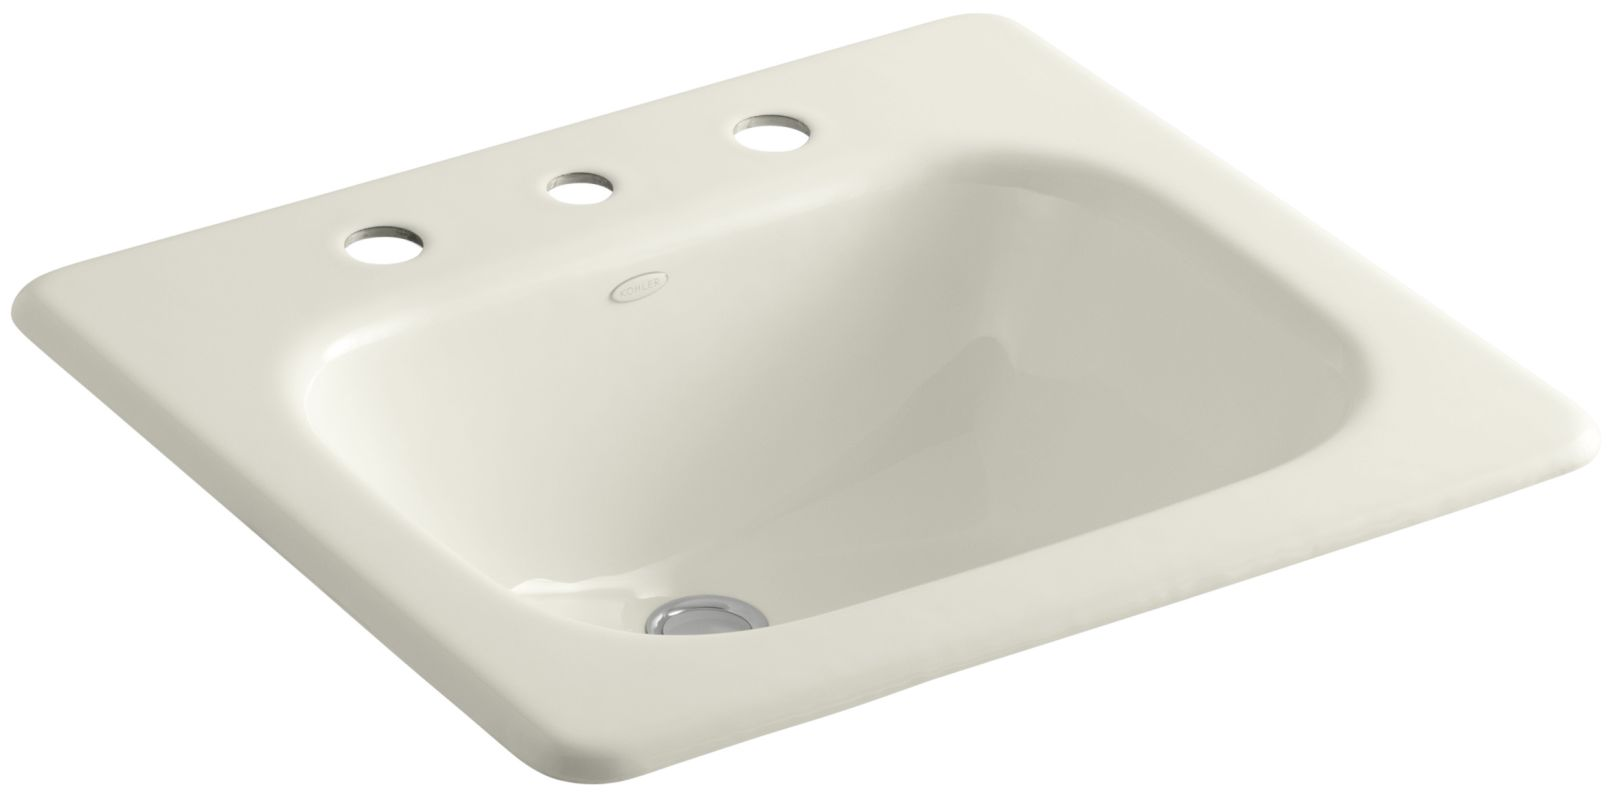 Kohler k 2895 8 96 biscuit tahoe 16 cast iron drop in bathroom sink with 3 holes drilled and Kohler cast iron bathroom sink